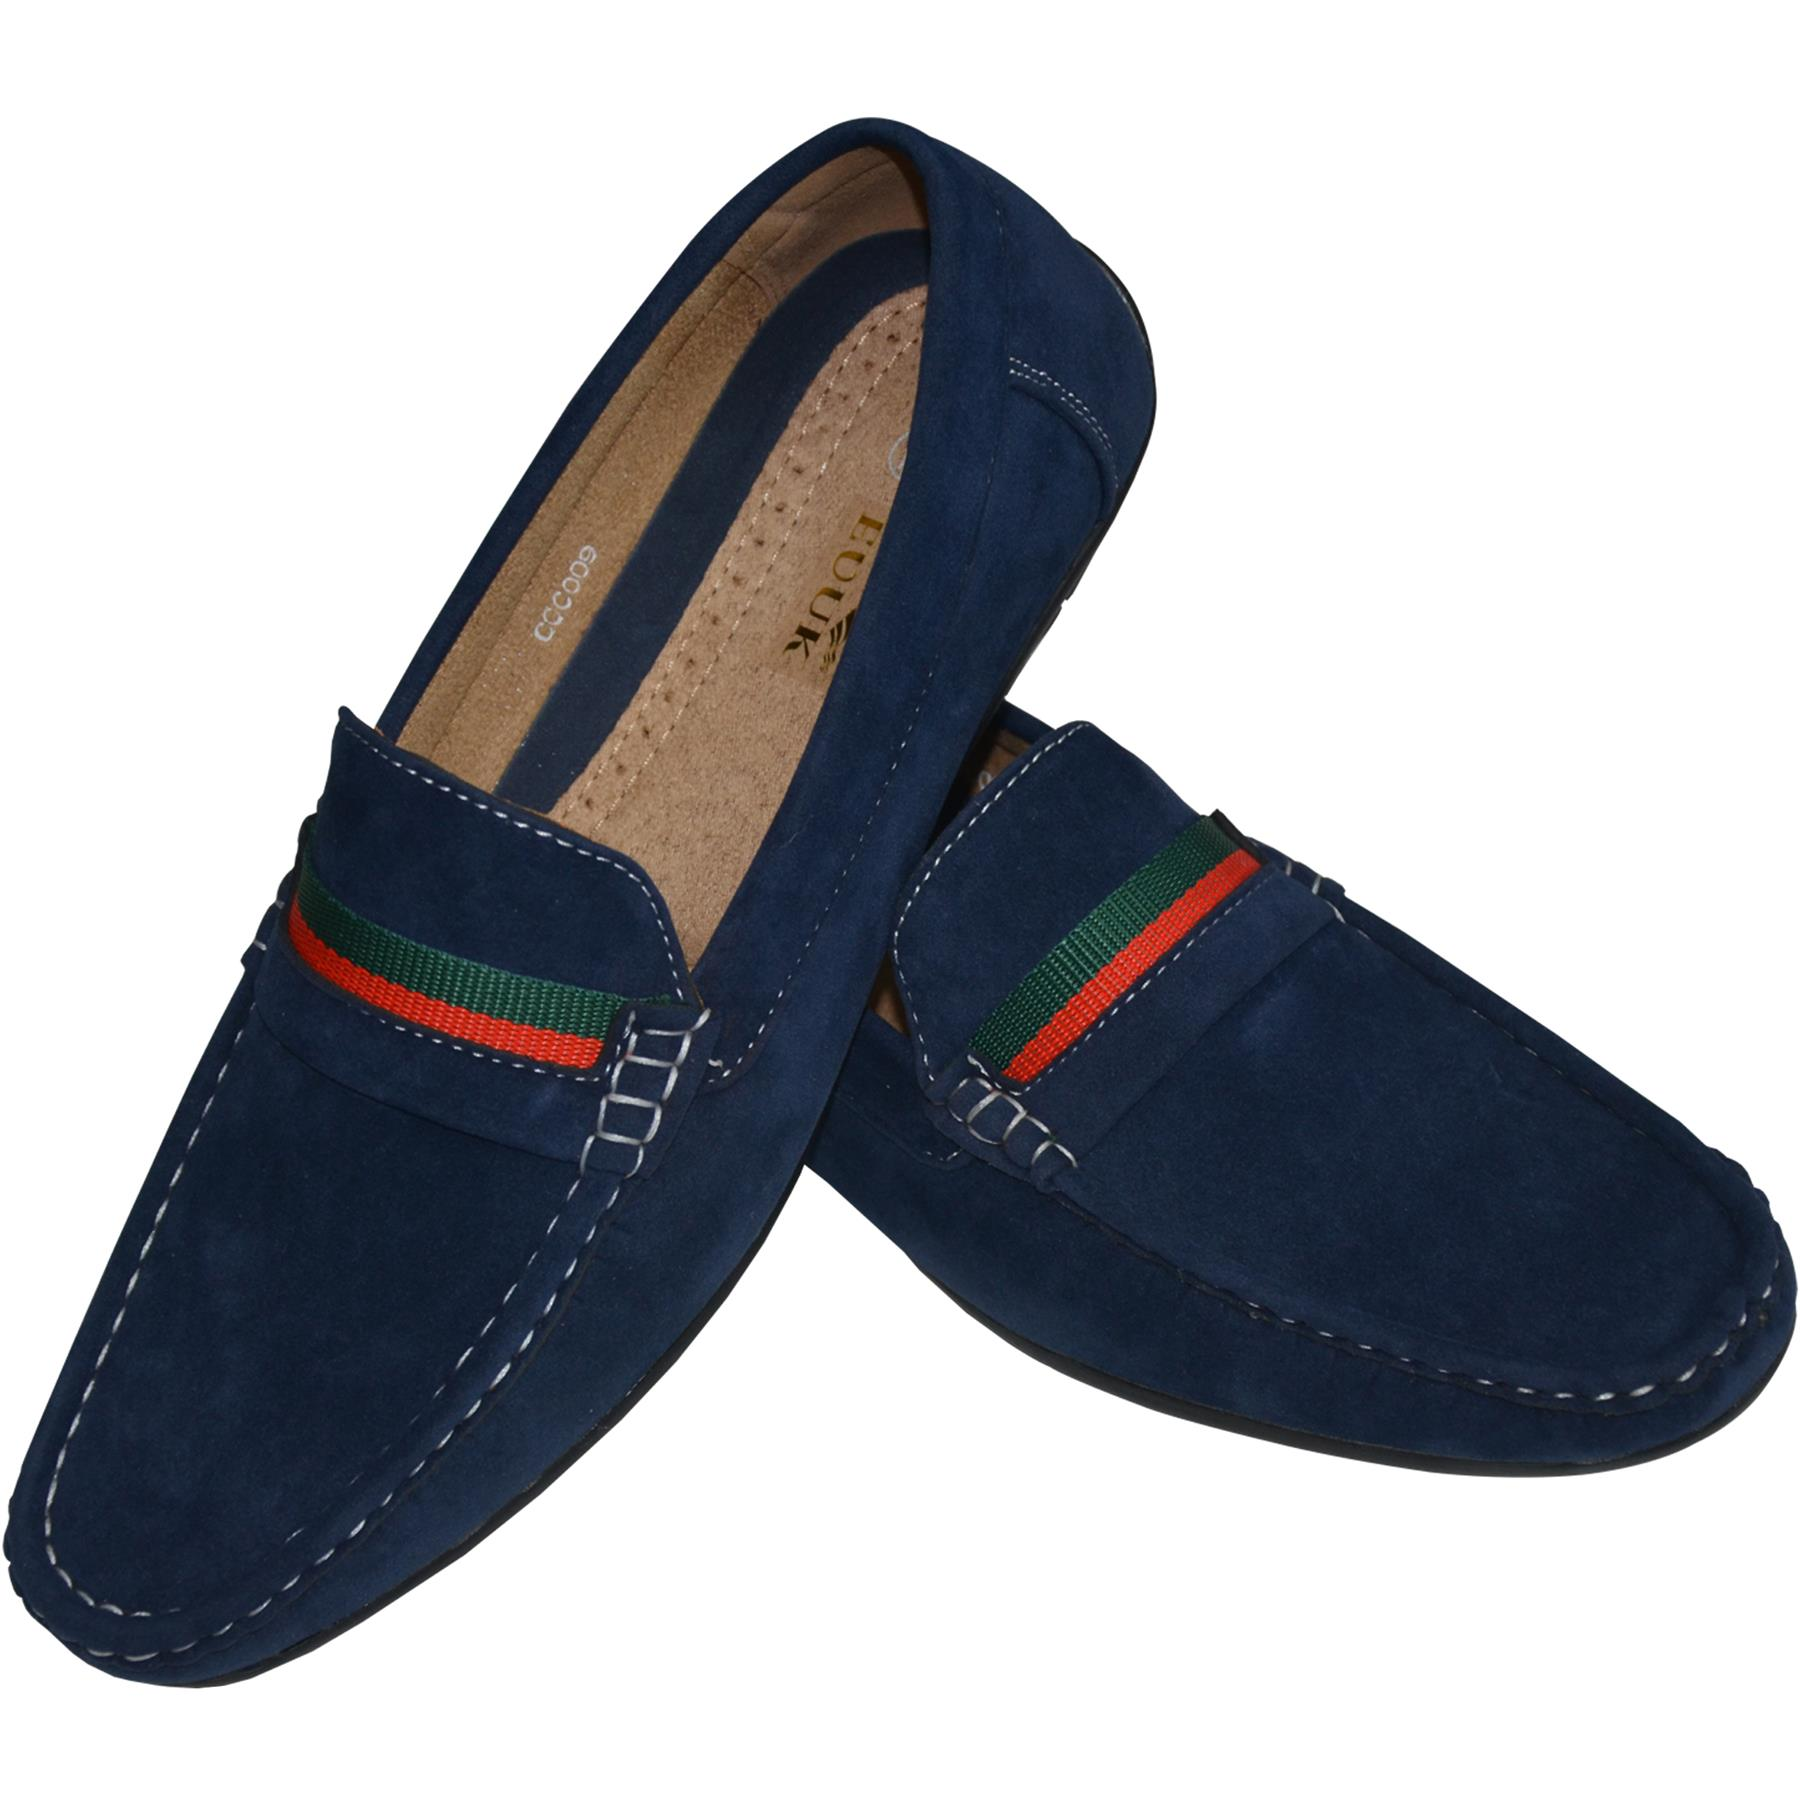 Mens-Suede-Loafers-Shoes-Moccasin-Slip-On-Casual-Boat-Driving-UK-Sizes-6-12 thumbnail 34